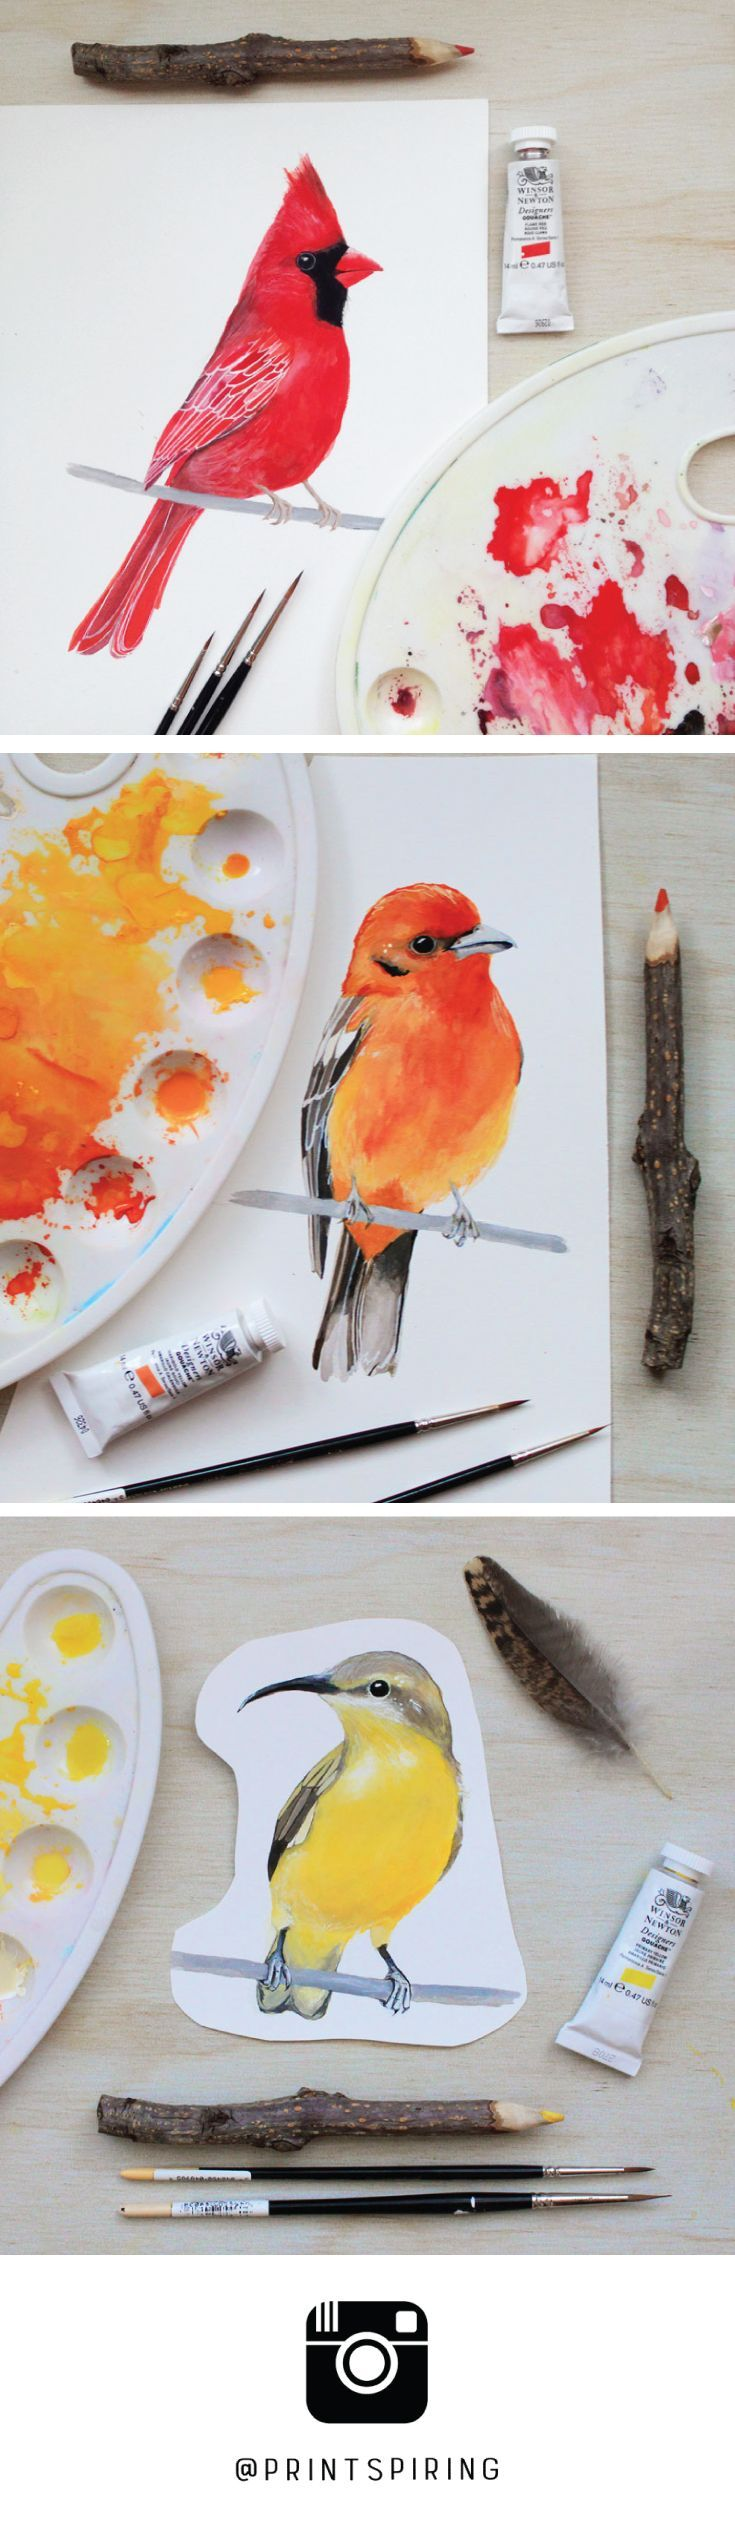 Watercolor & Gouache Bird Paintings by PRINTSPIRING | Red Cardinal, Flame-coloured Tanager, Yellow Bellied Sunbird | Work in progress | Sketchbook Art | Painting a day | Creative space, studio table